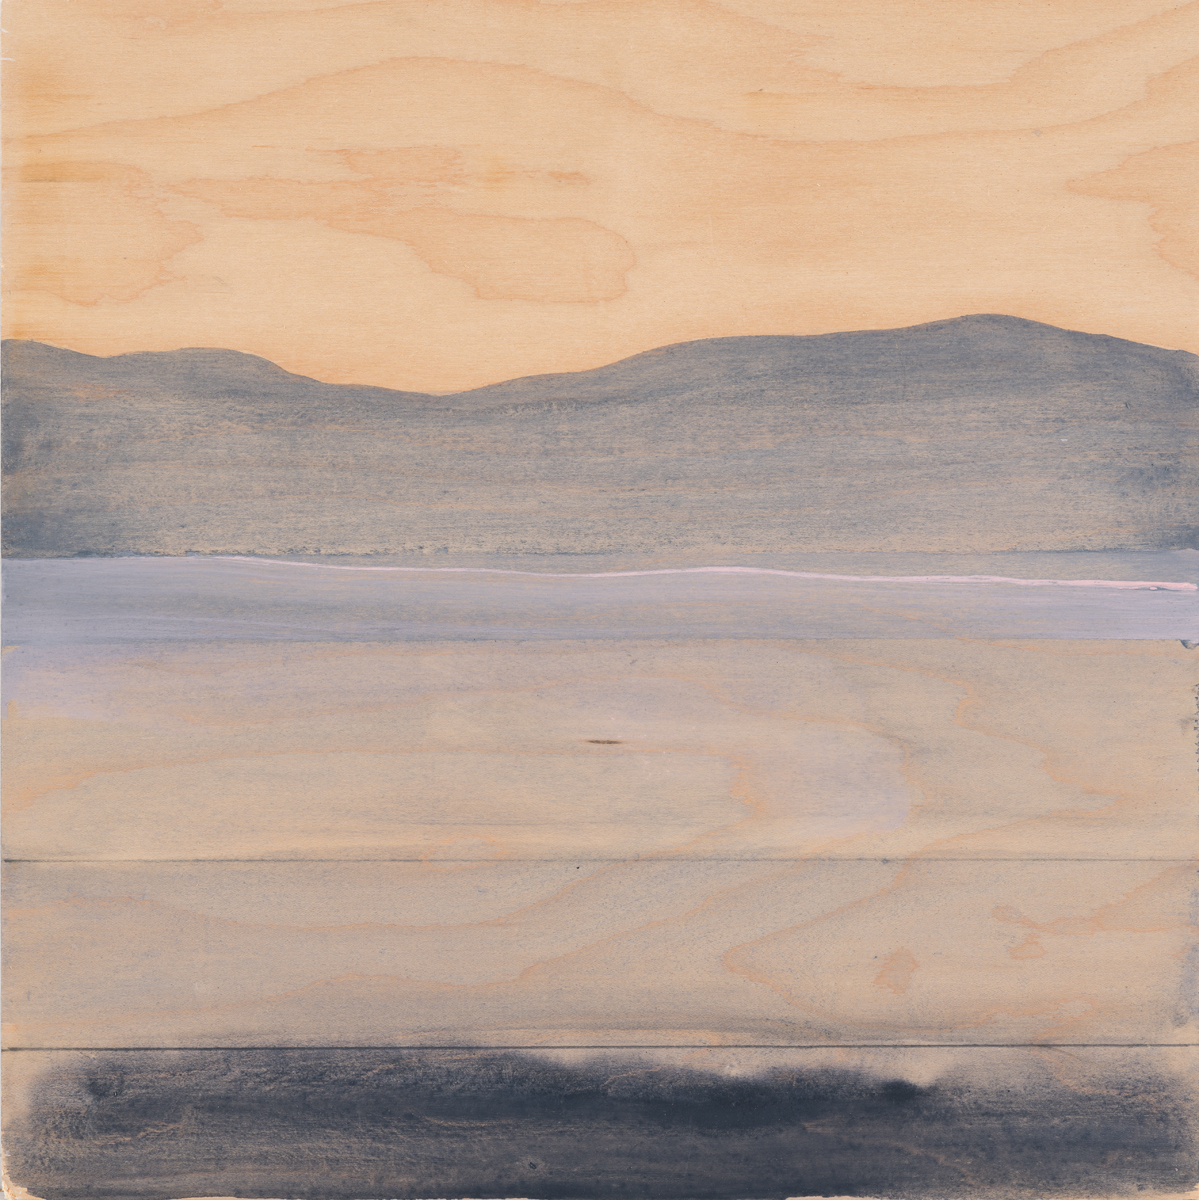 """Landscape with veneer sky , 2016. Acrylic and graphite on wood panel. 13-1/4""""x13"""""""